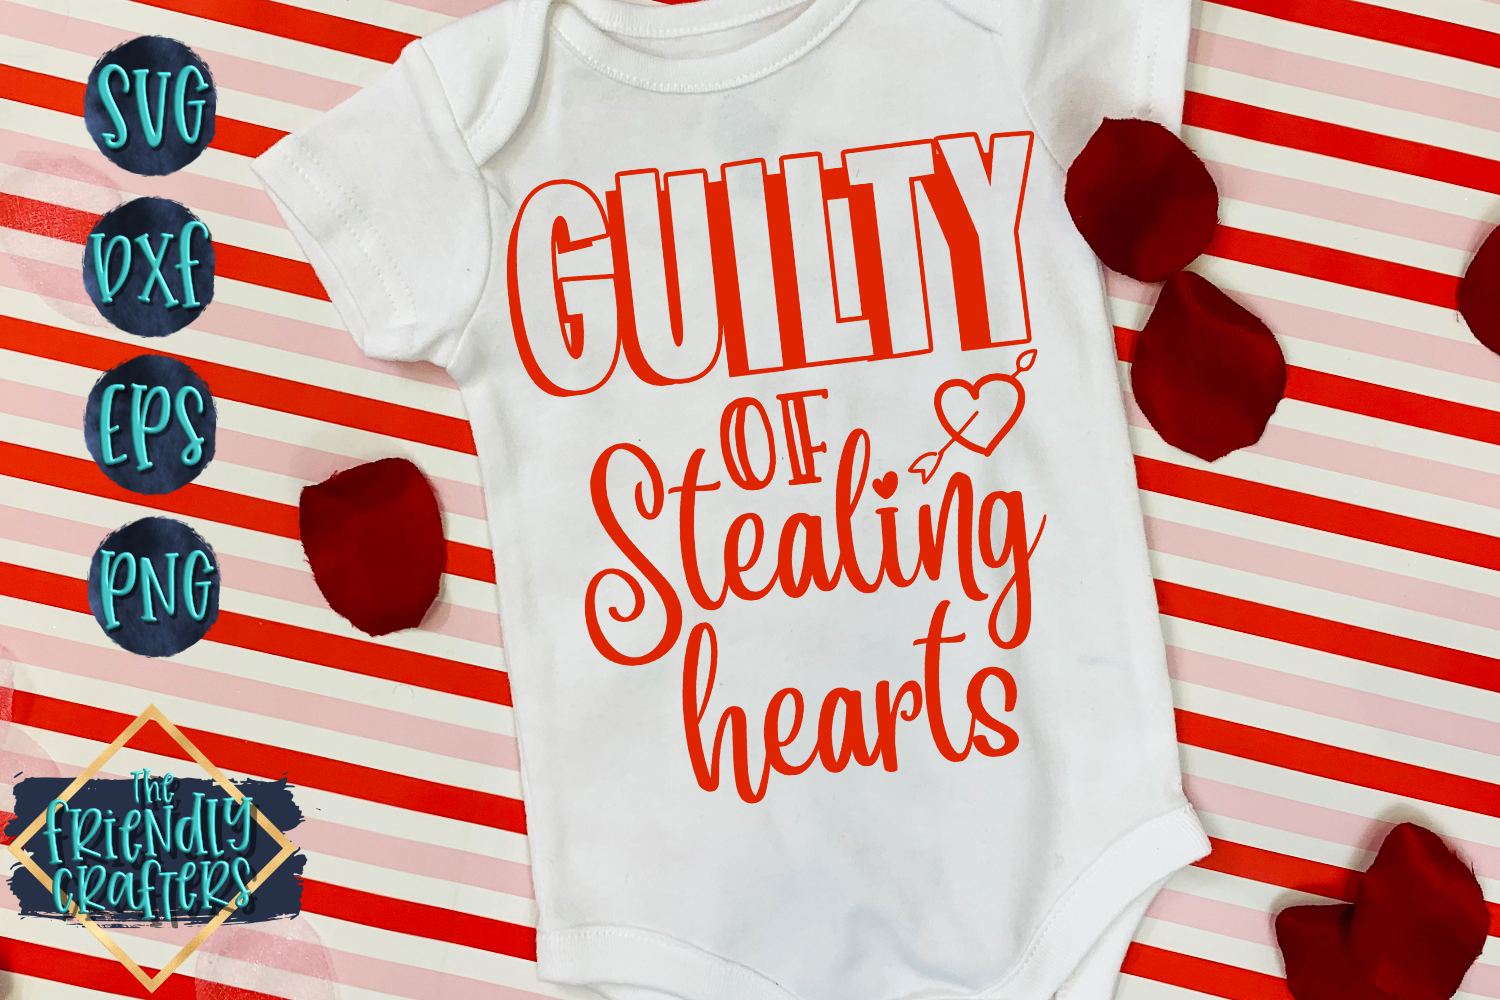 Guilty of Stealing Hearts example image 4